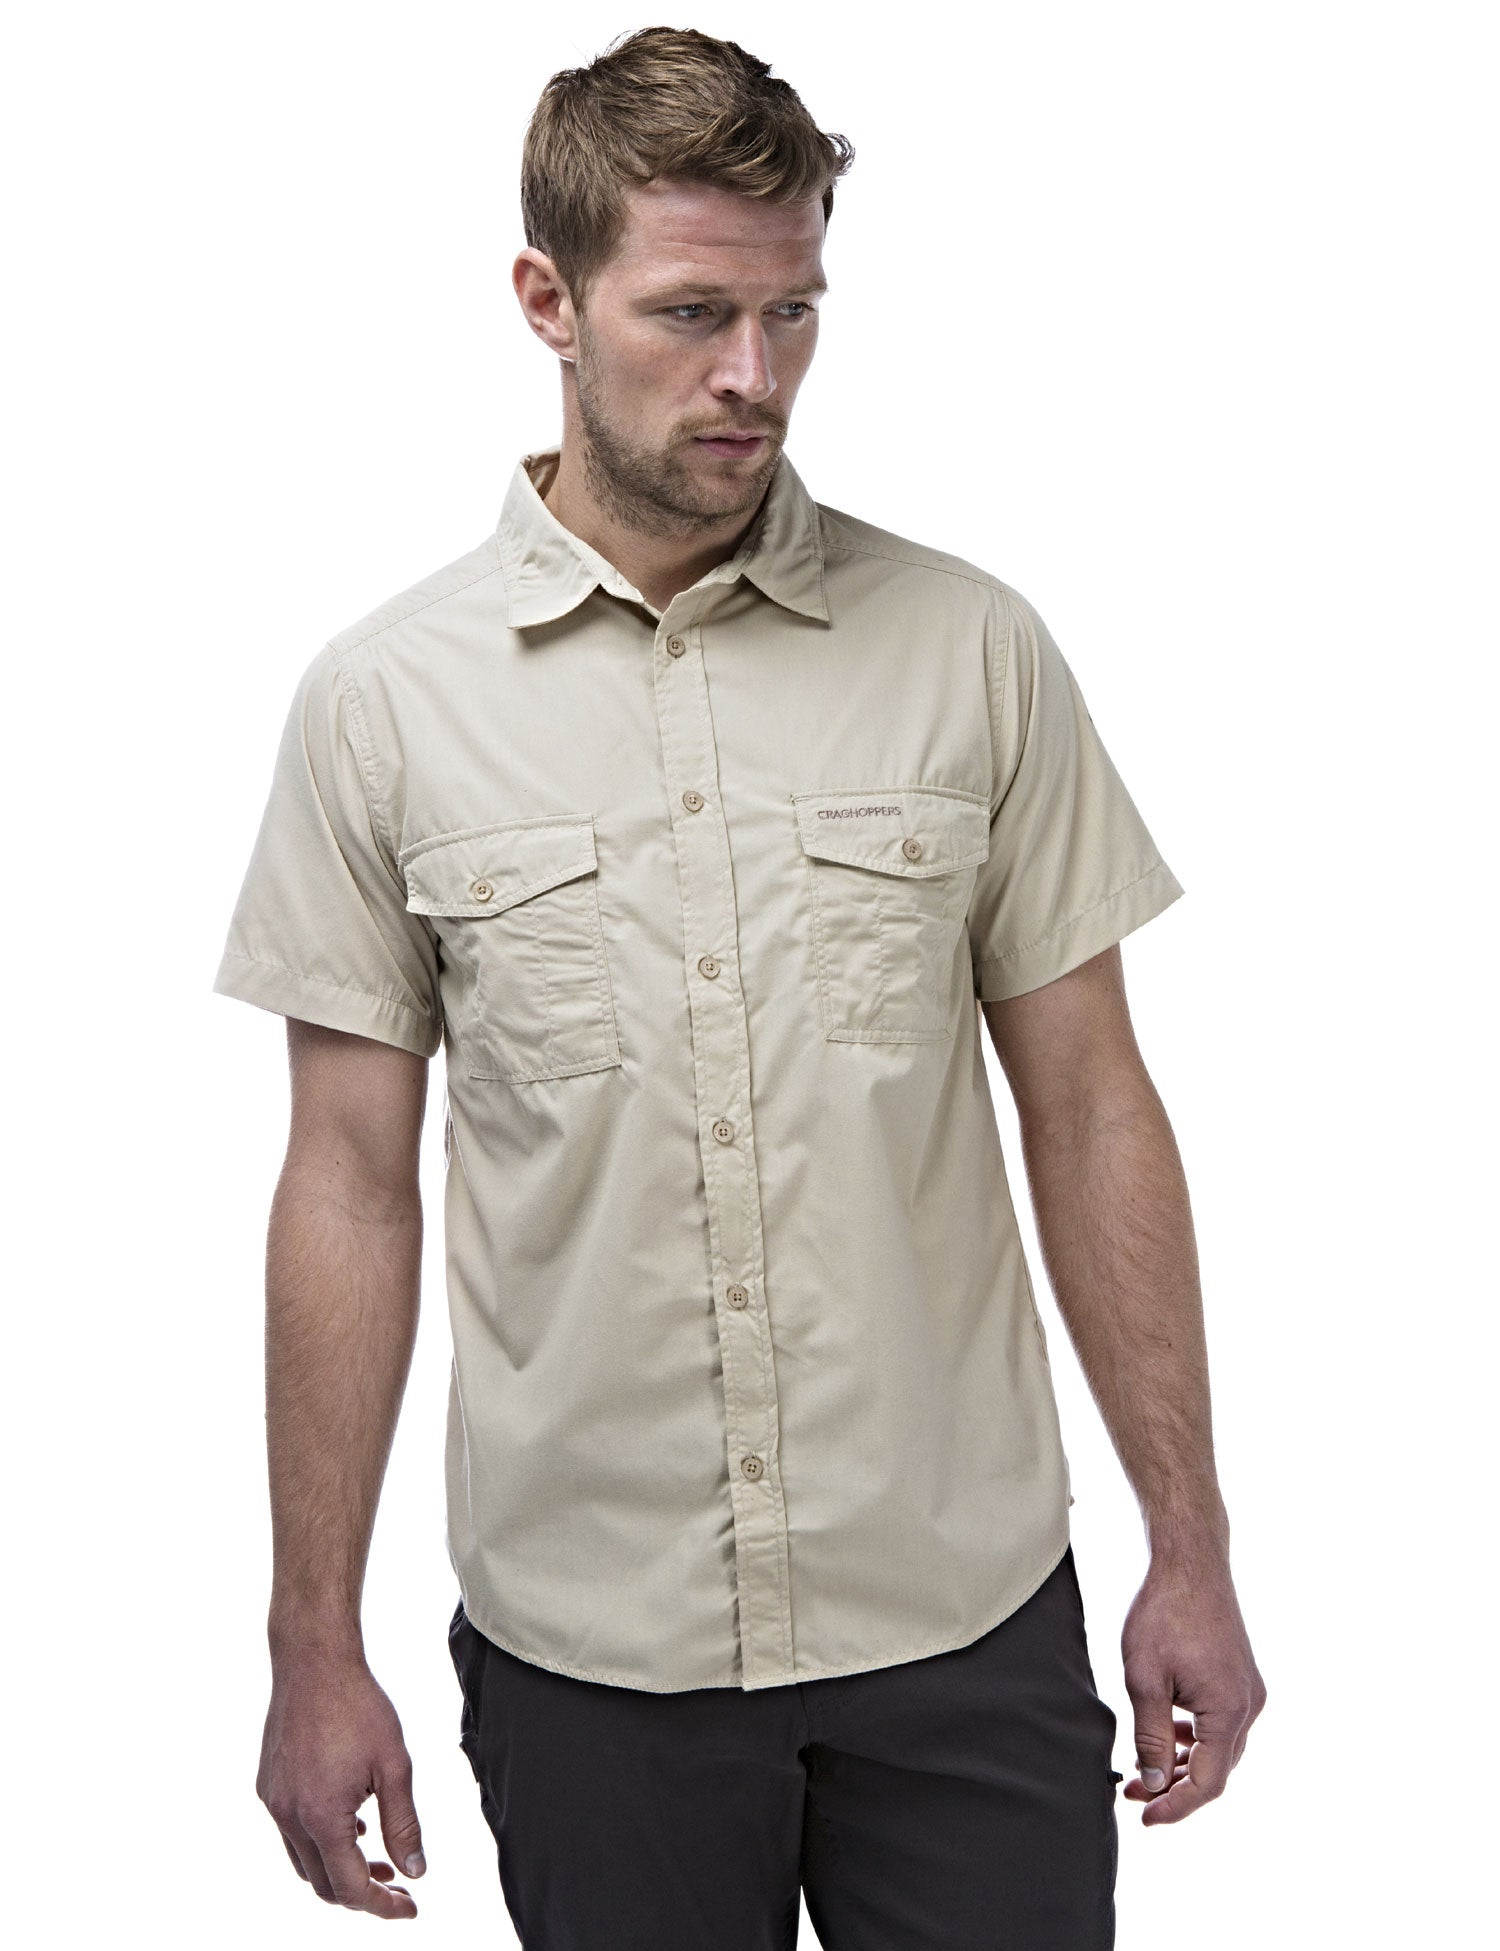 Man wearing Kiwi Short Sleeve Shirt by Craghoppers